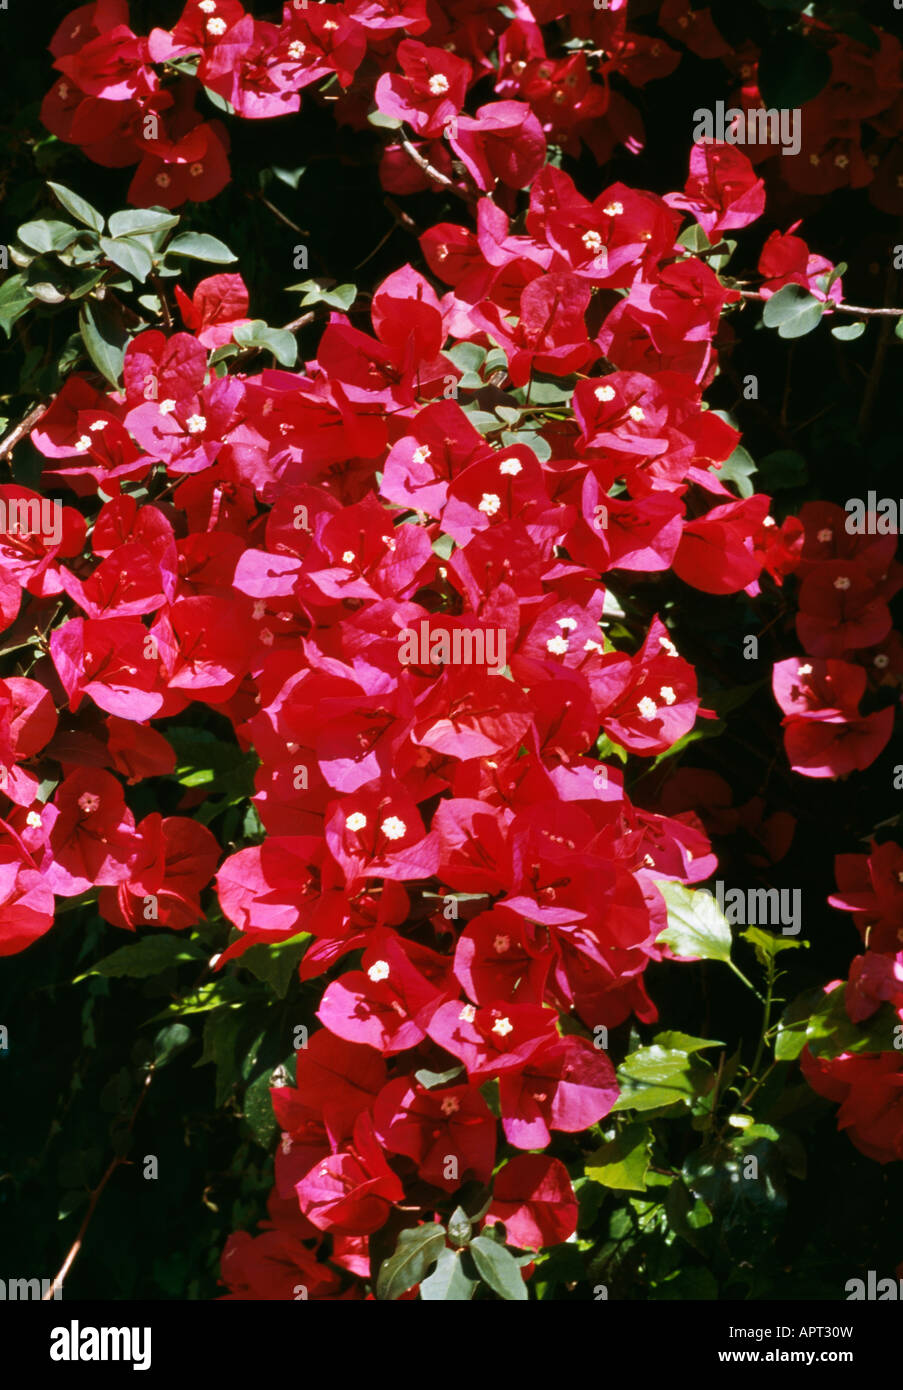 Bougainvillea spectabilis magenta red an exotic attack of seduction enlighting the garden - Stock Image